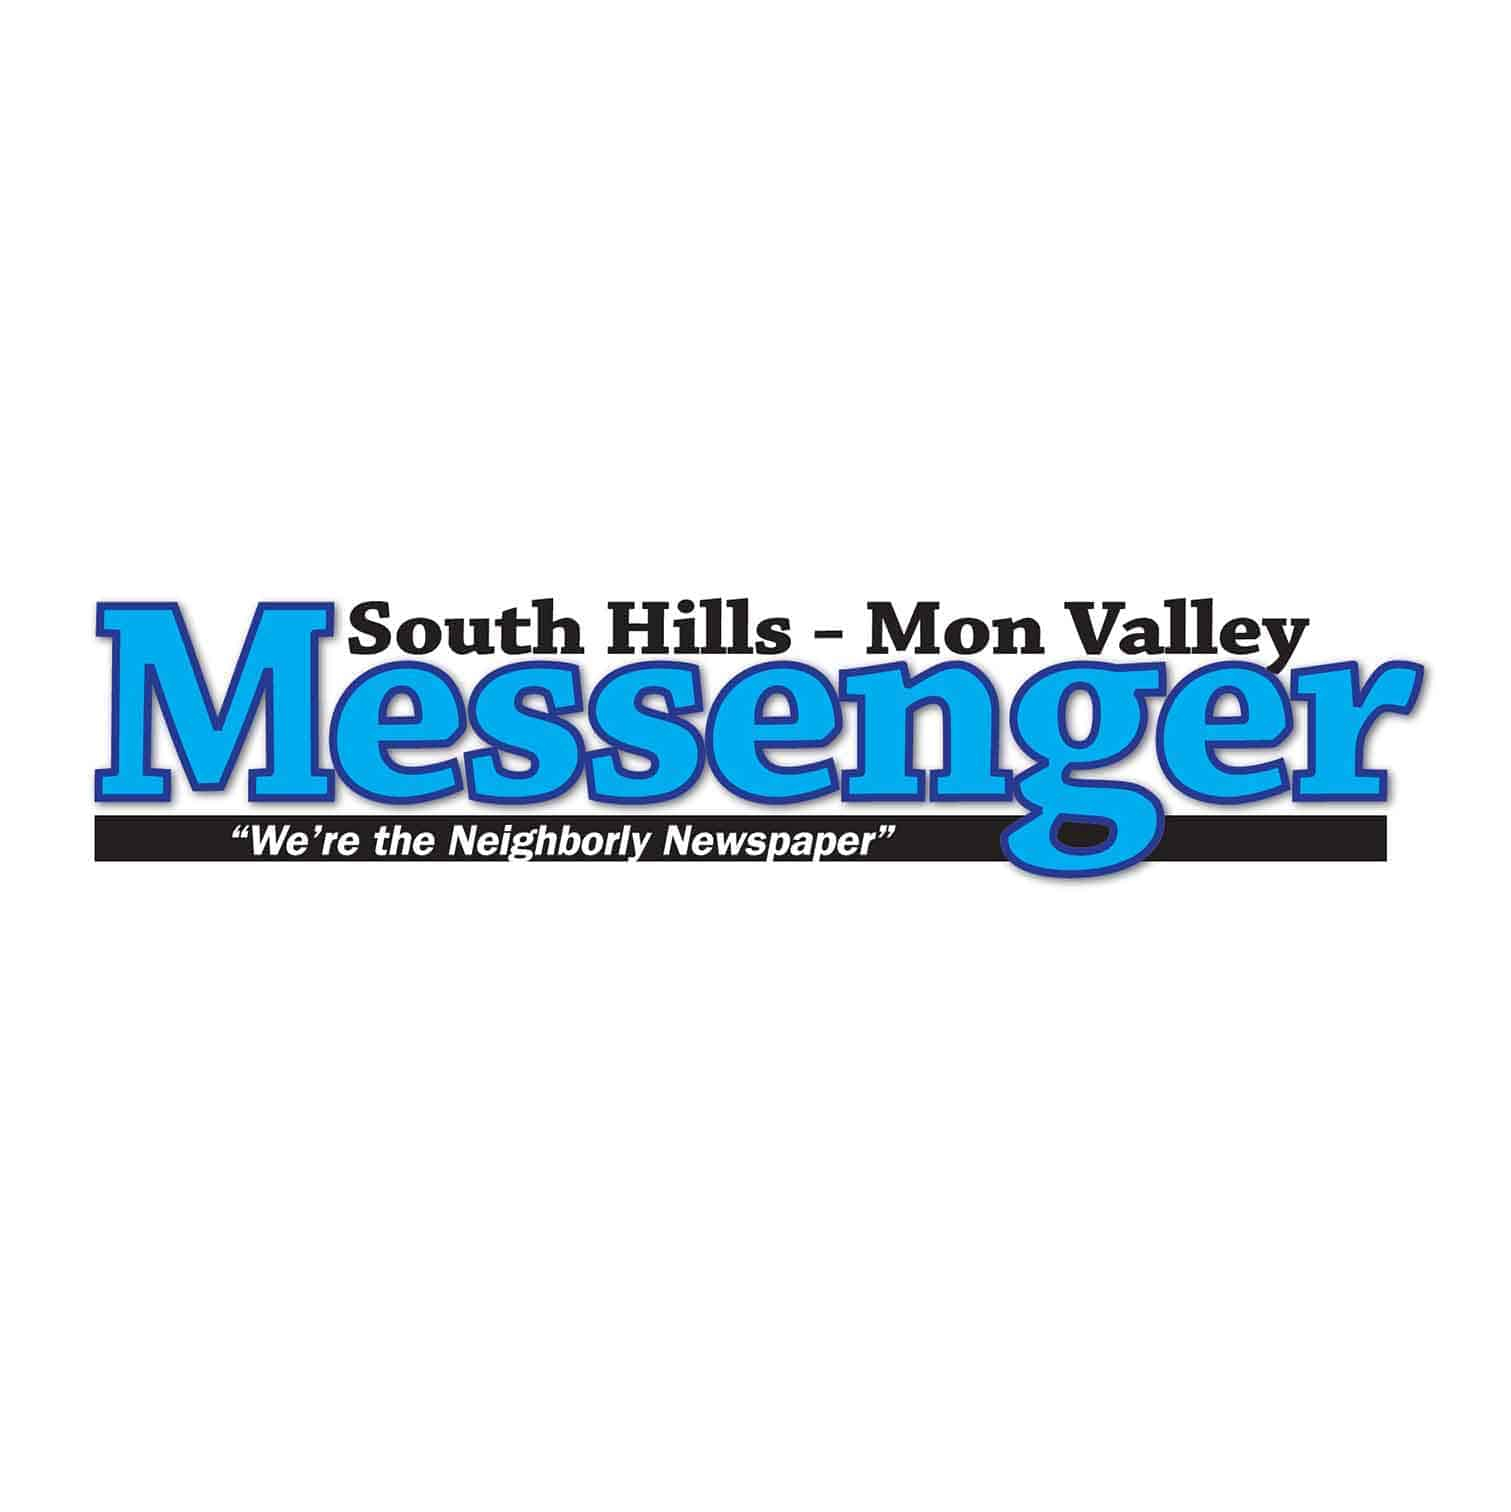 South Hills Mon Valley Messenger